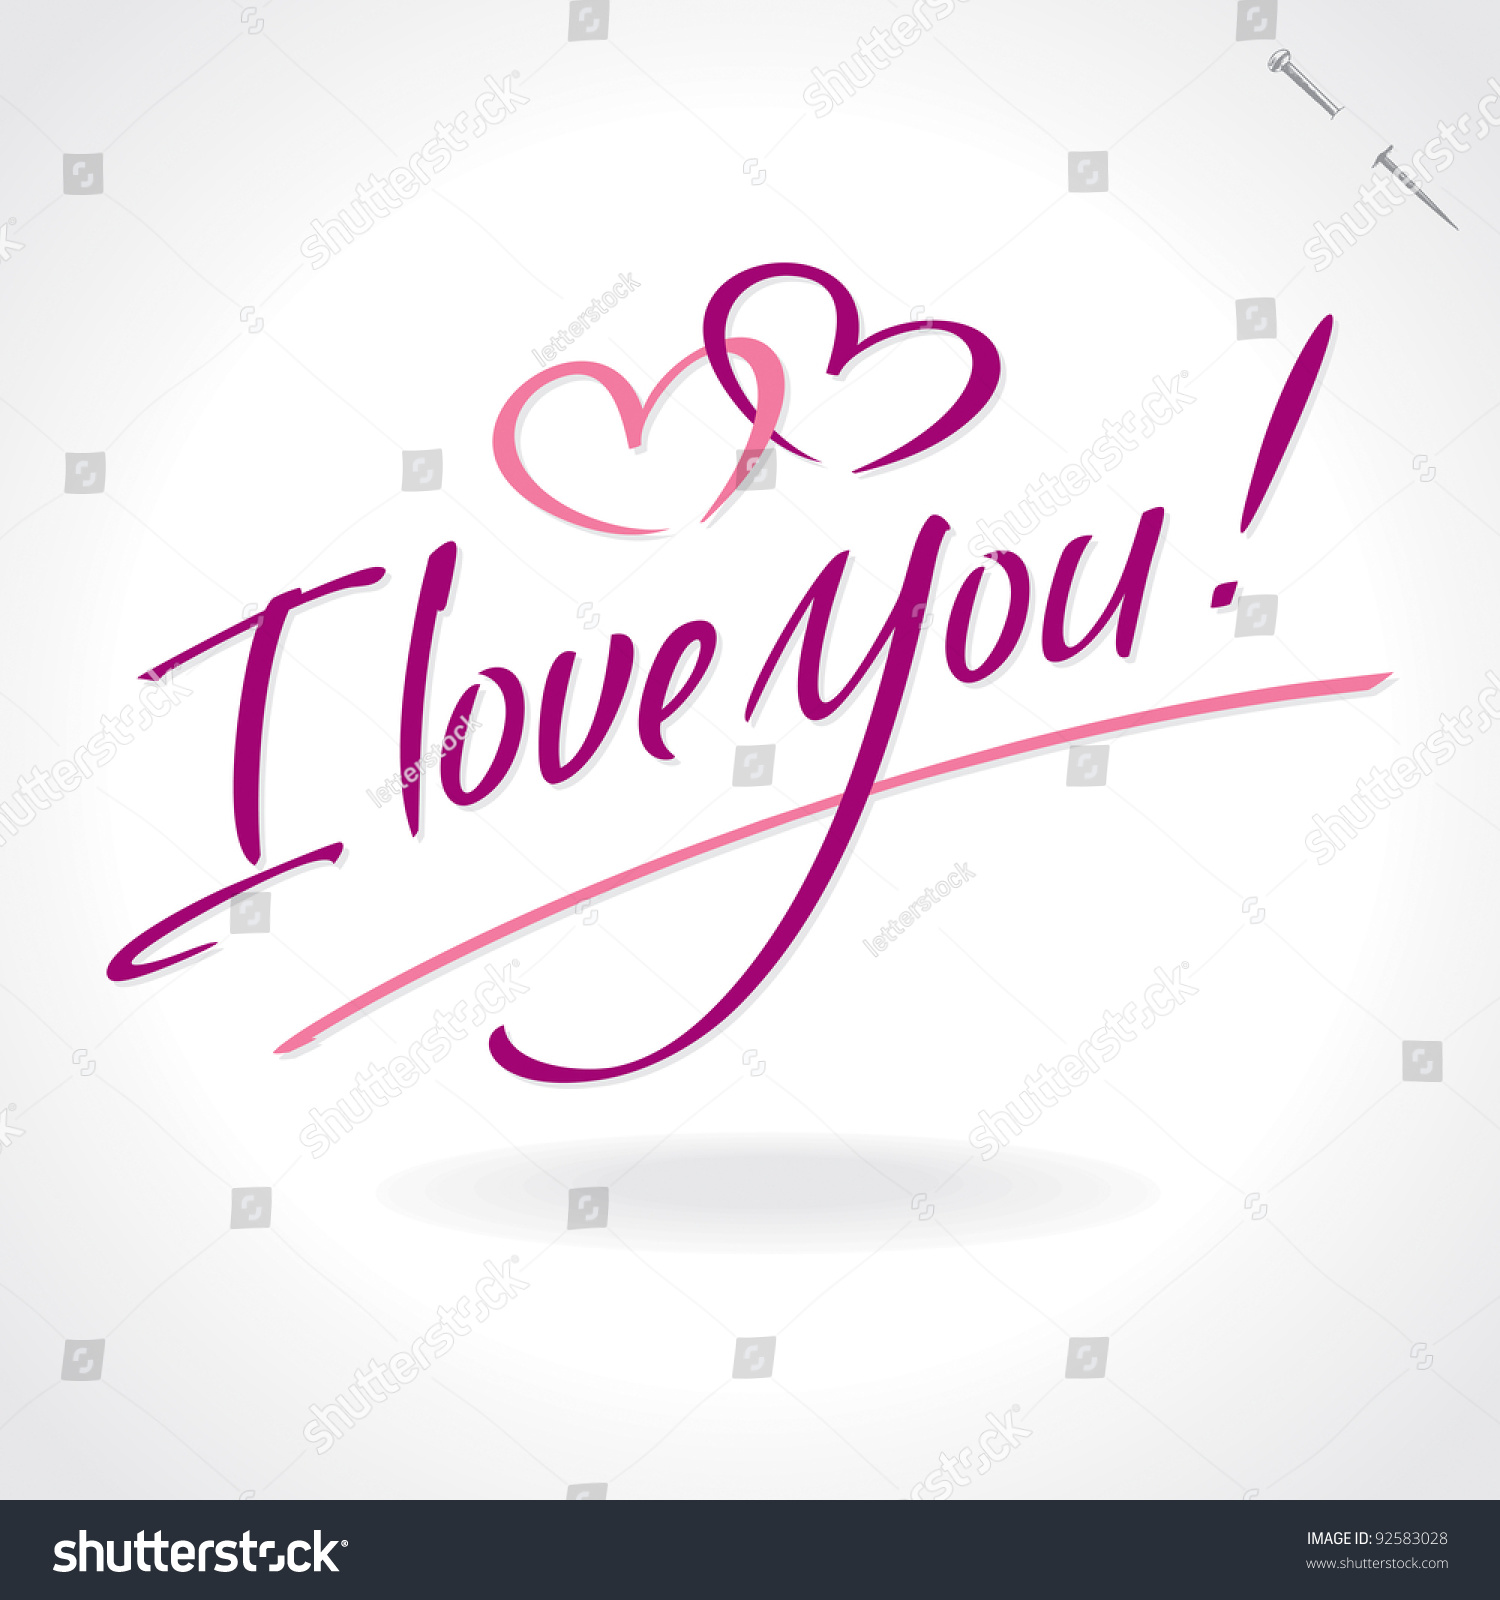 I Love You Hand Lettering Handmade Stock Vector 92583028